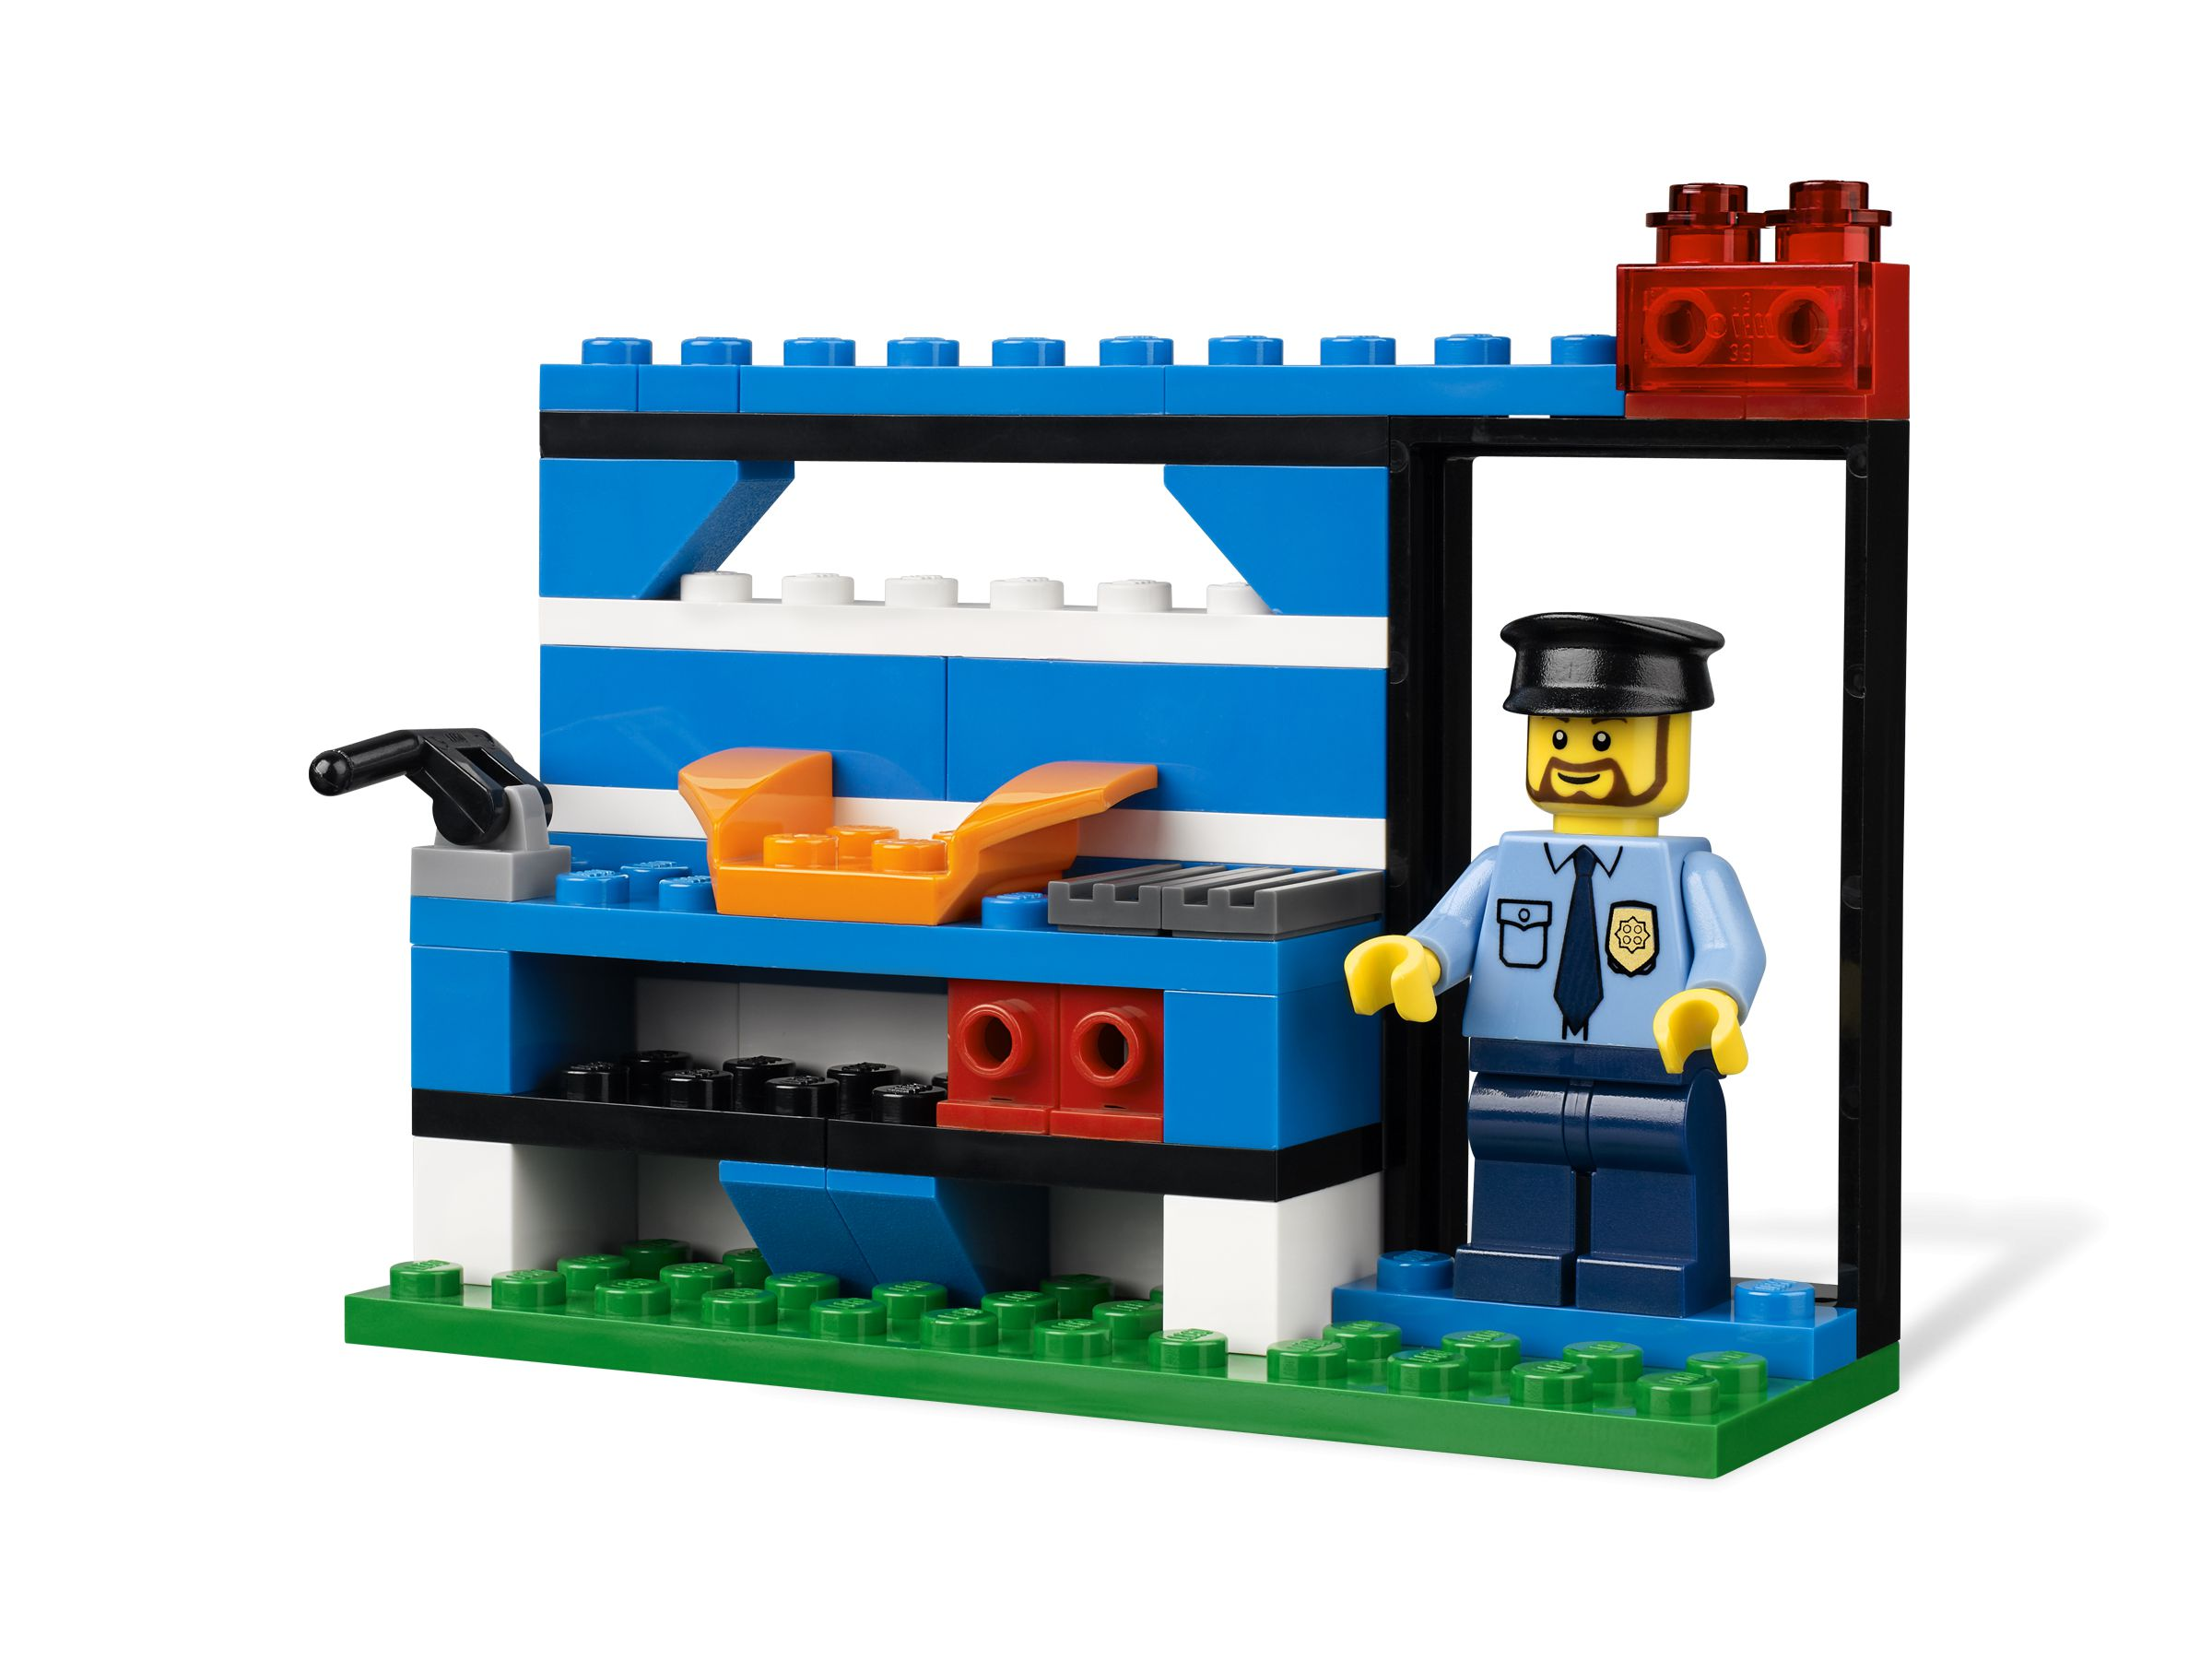 LEGO Bricks and More 4636 Police Building Set LEGO_4636_alt4.jpg